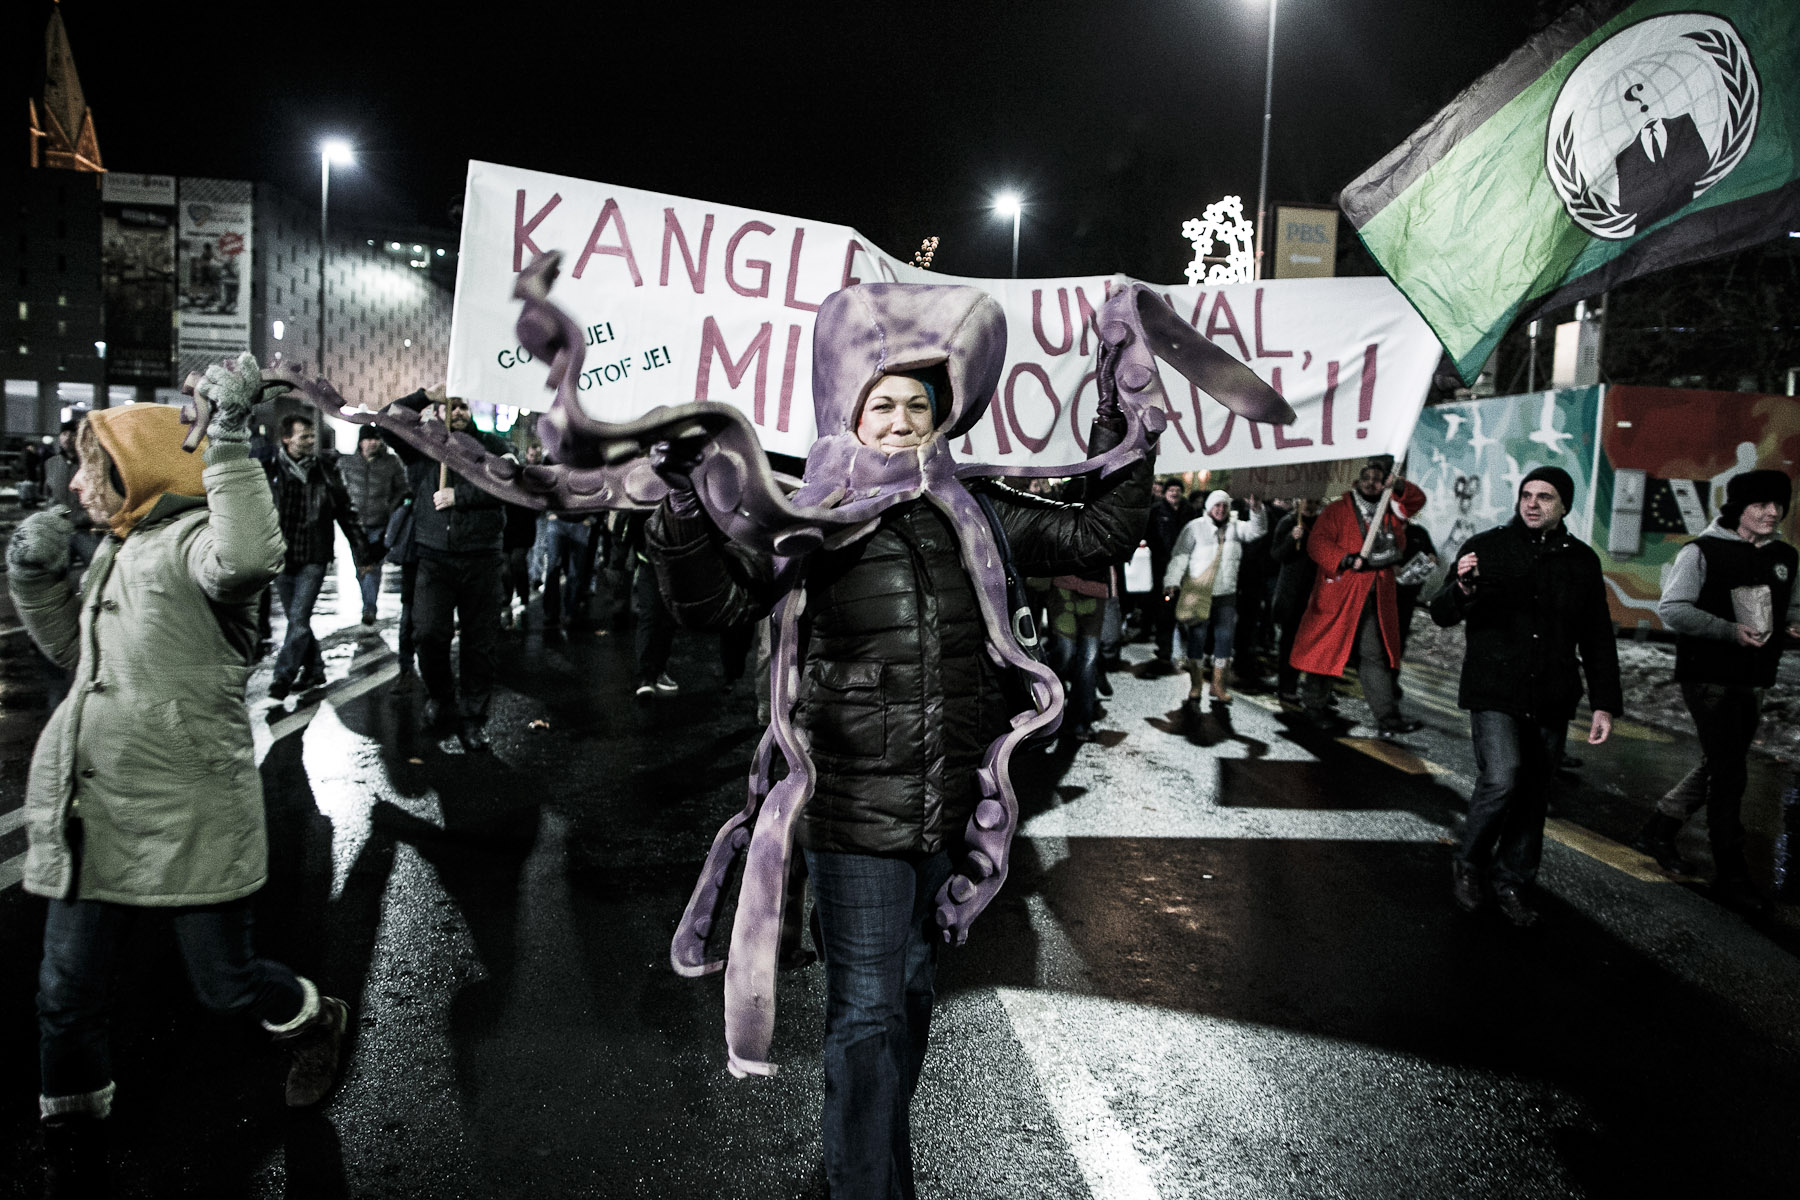 A protester wears an octopus mask referring to the system of local corruption during a protest march against the mayor and the local government in Maribor, Slovenia, on December 14, 2012.